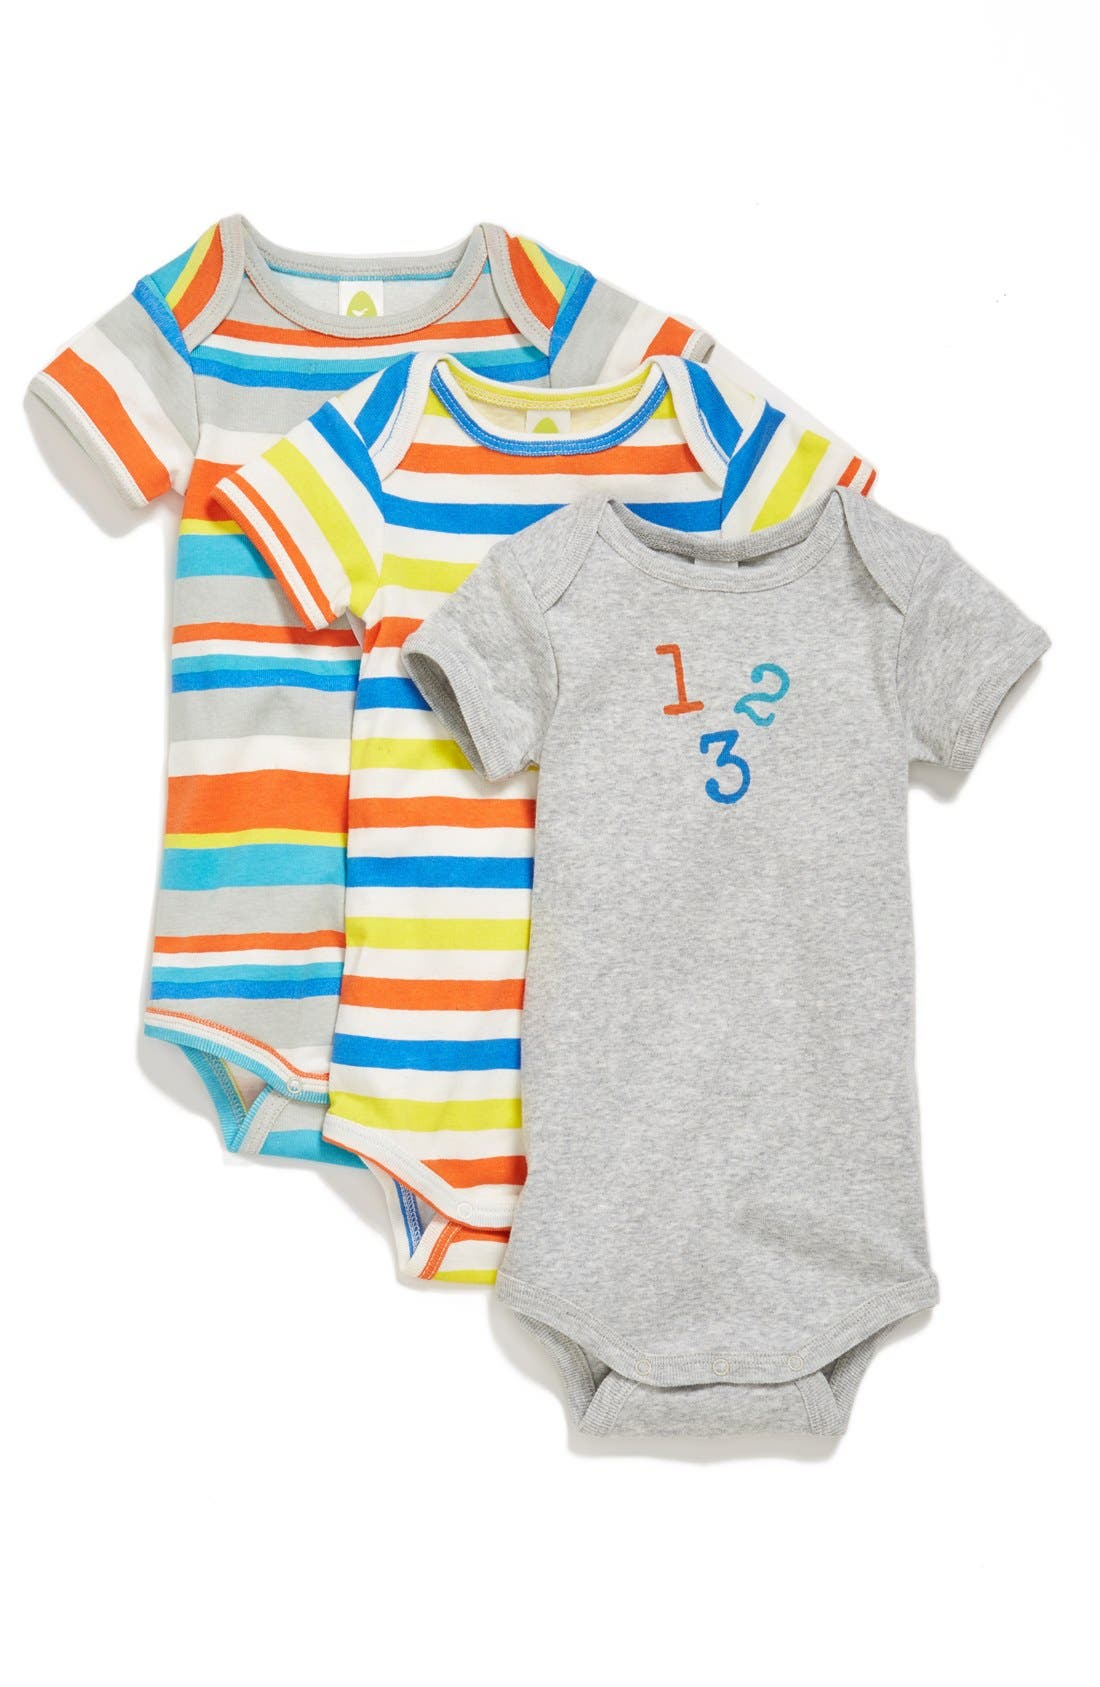 Alternate Image 1 Selected - Stem Baby Organic Cotton Bodysuit (3-Pack) (Baby Boys) (Nordstrom Exclusive)